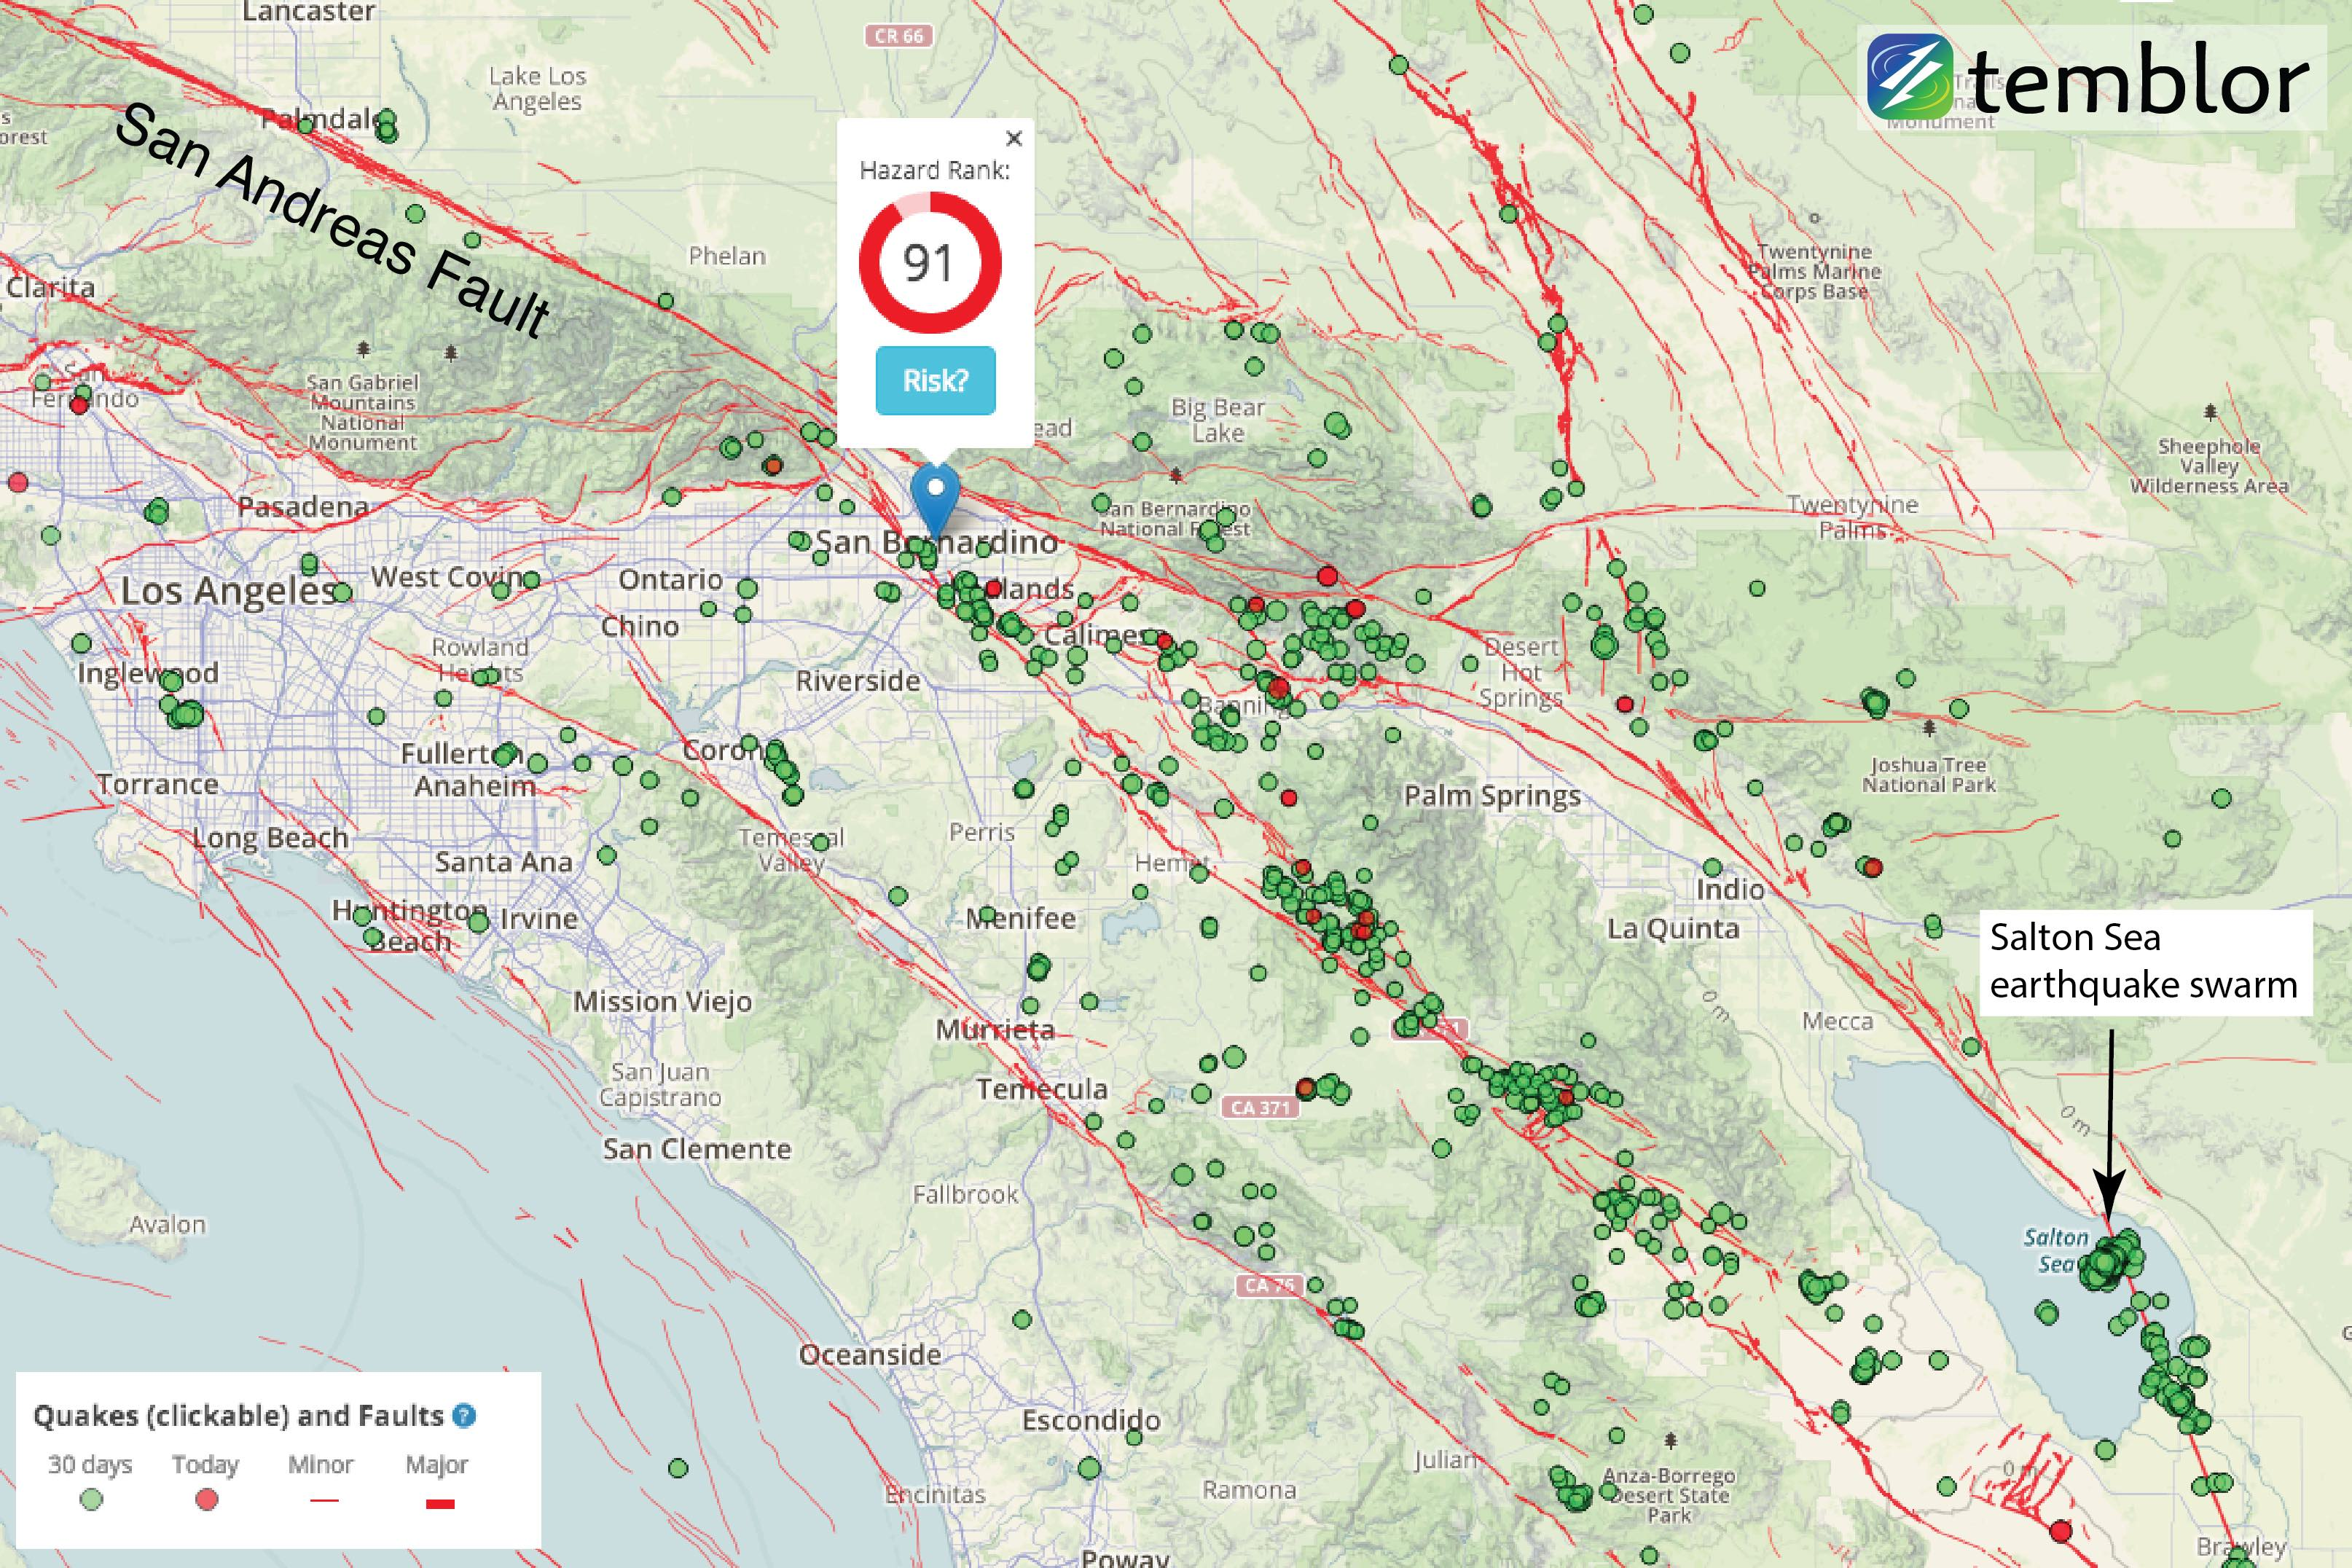 San-andreas-fault-map-earthquake-advisory-san-bernardino.jpg